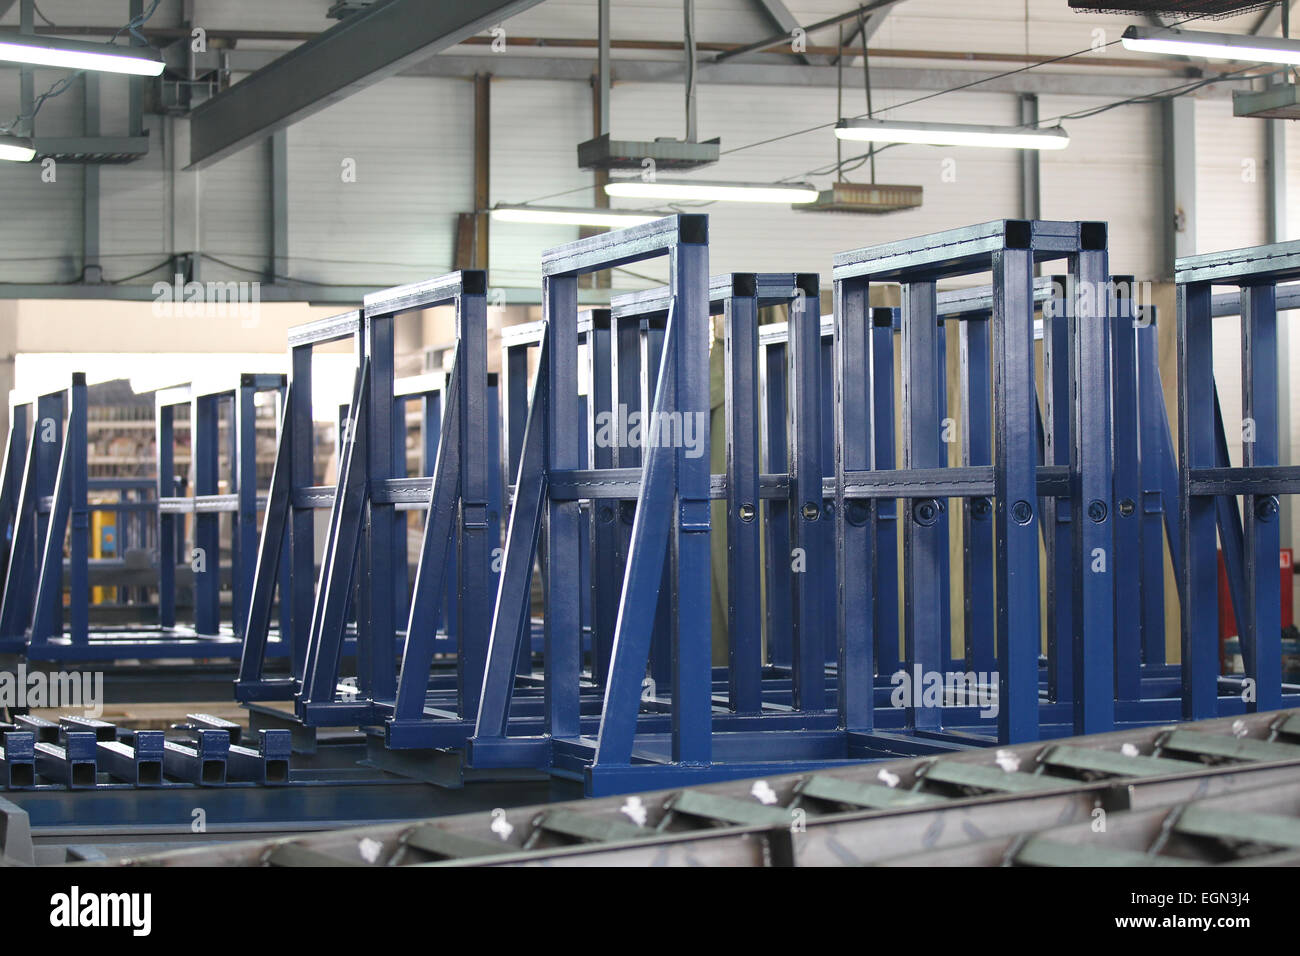 various elements of steel structures for further assembly - Stock Image